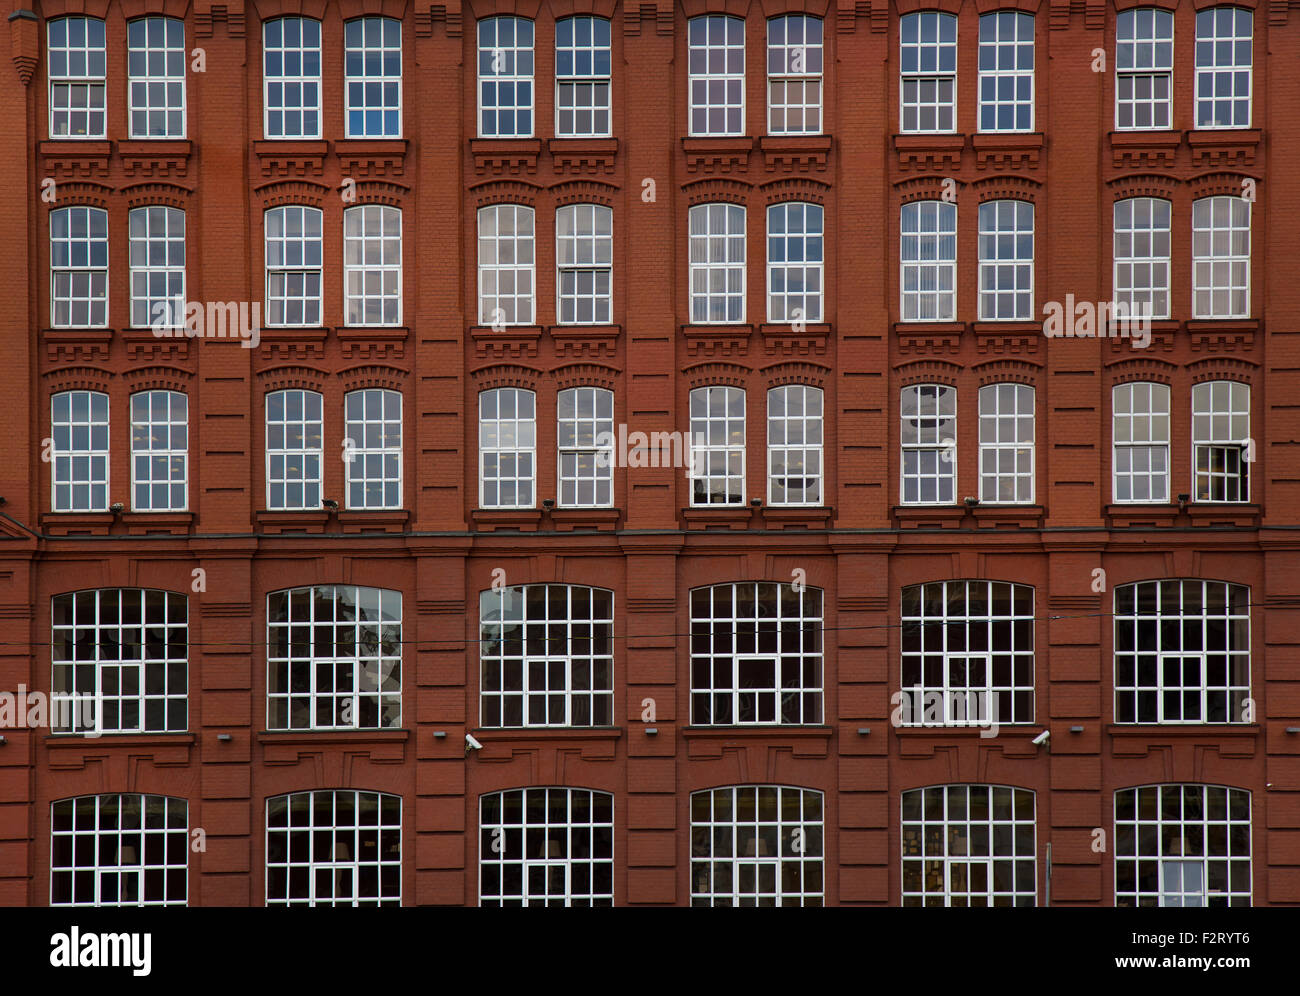 brick building windows stock photos & brick building windows stock